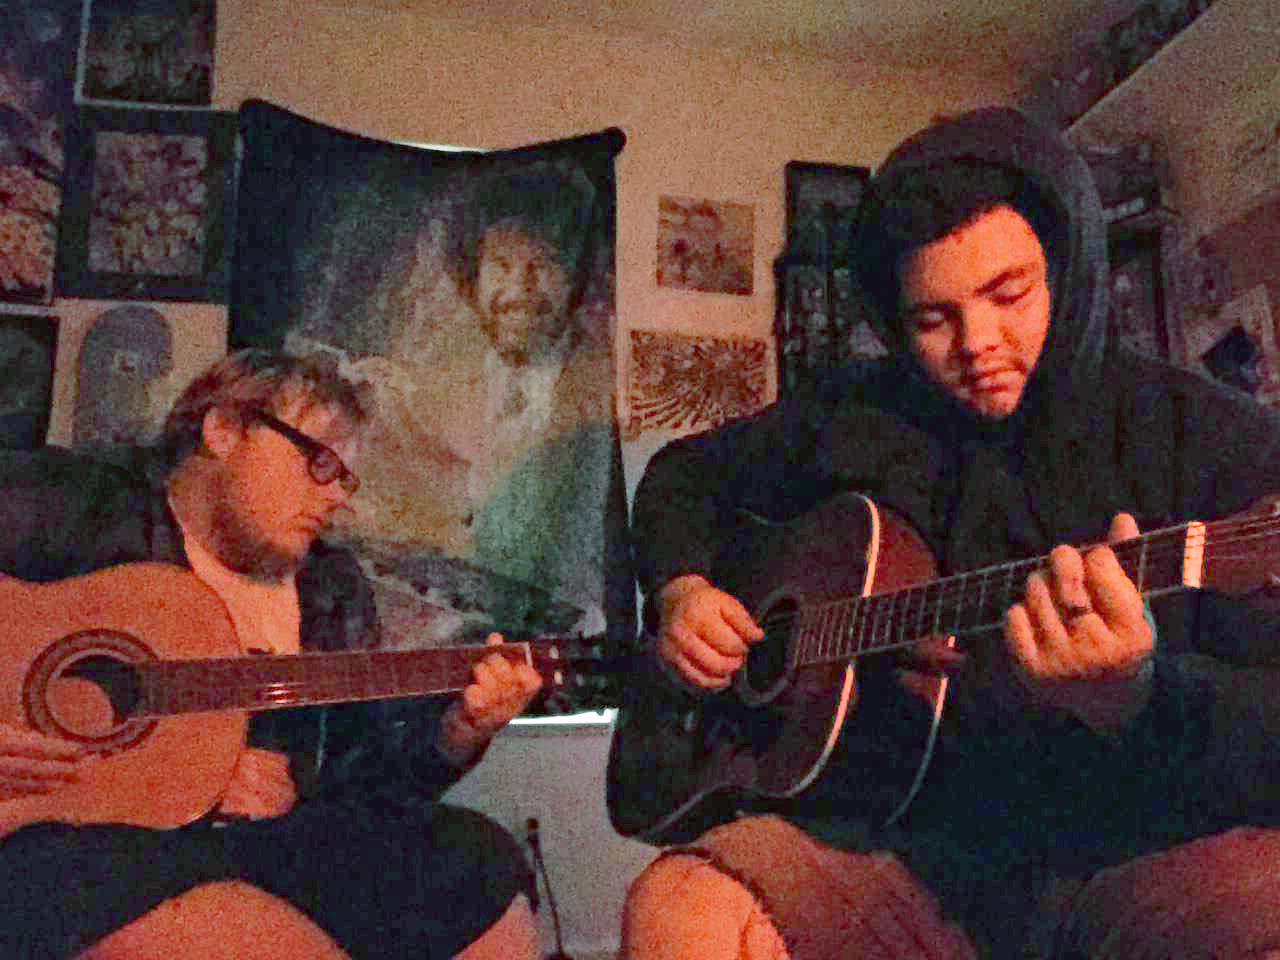 Scott Newton (left) and Denis Shrum sit together and play their music. Newton and Shrum enjoy inspiring others with their lyrics.